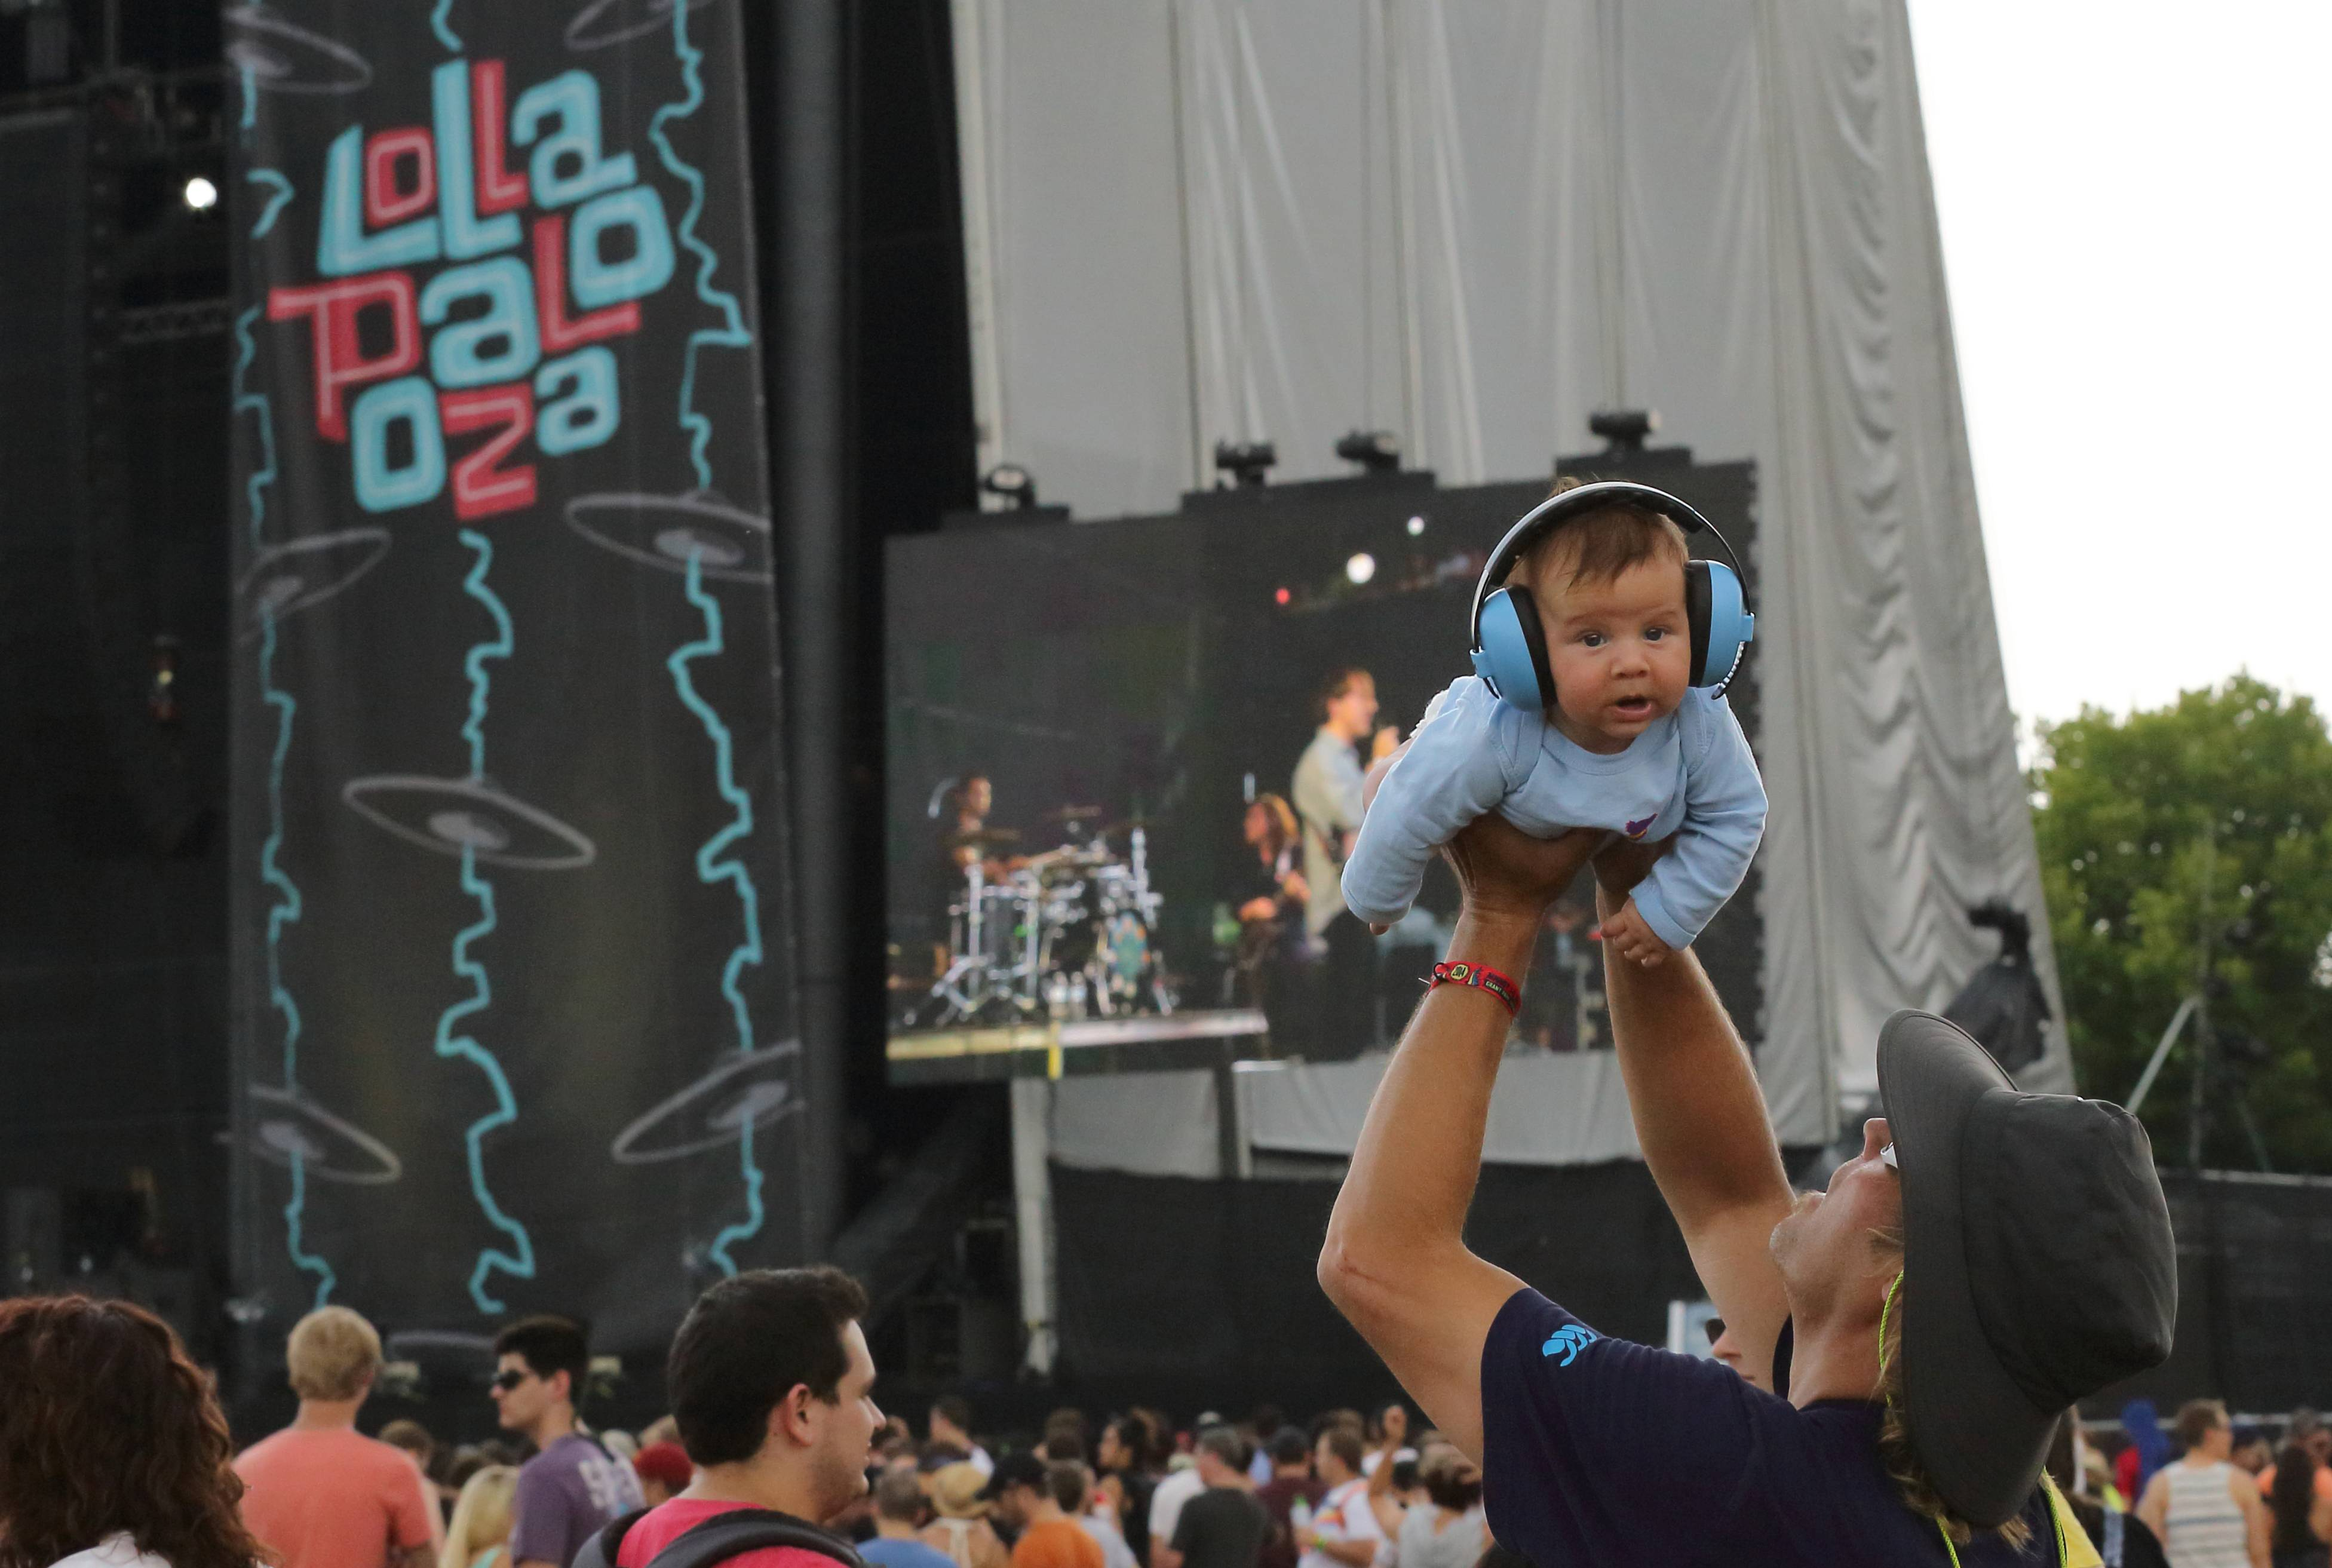 A man holds a baby wearing ear protection during a performance Firday at Lollapalooza in Chicago's Grant Park.